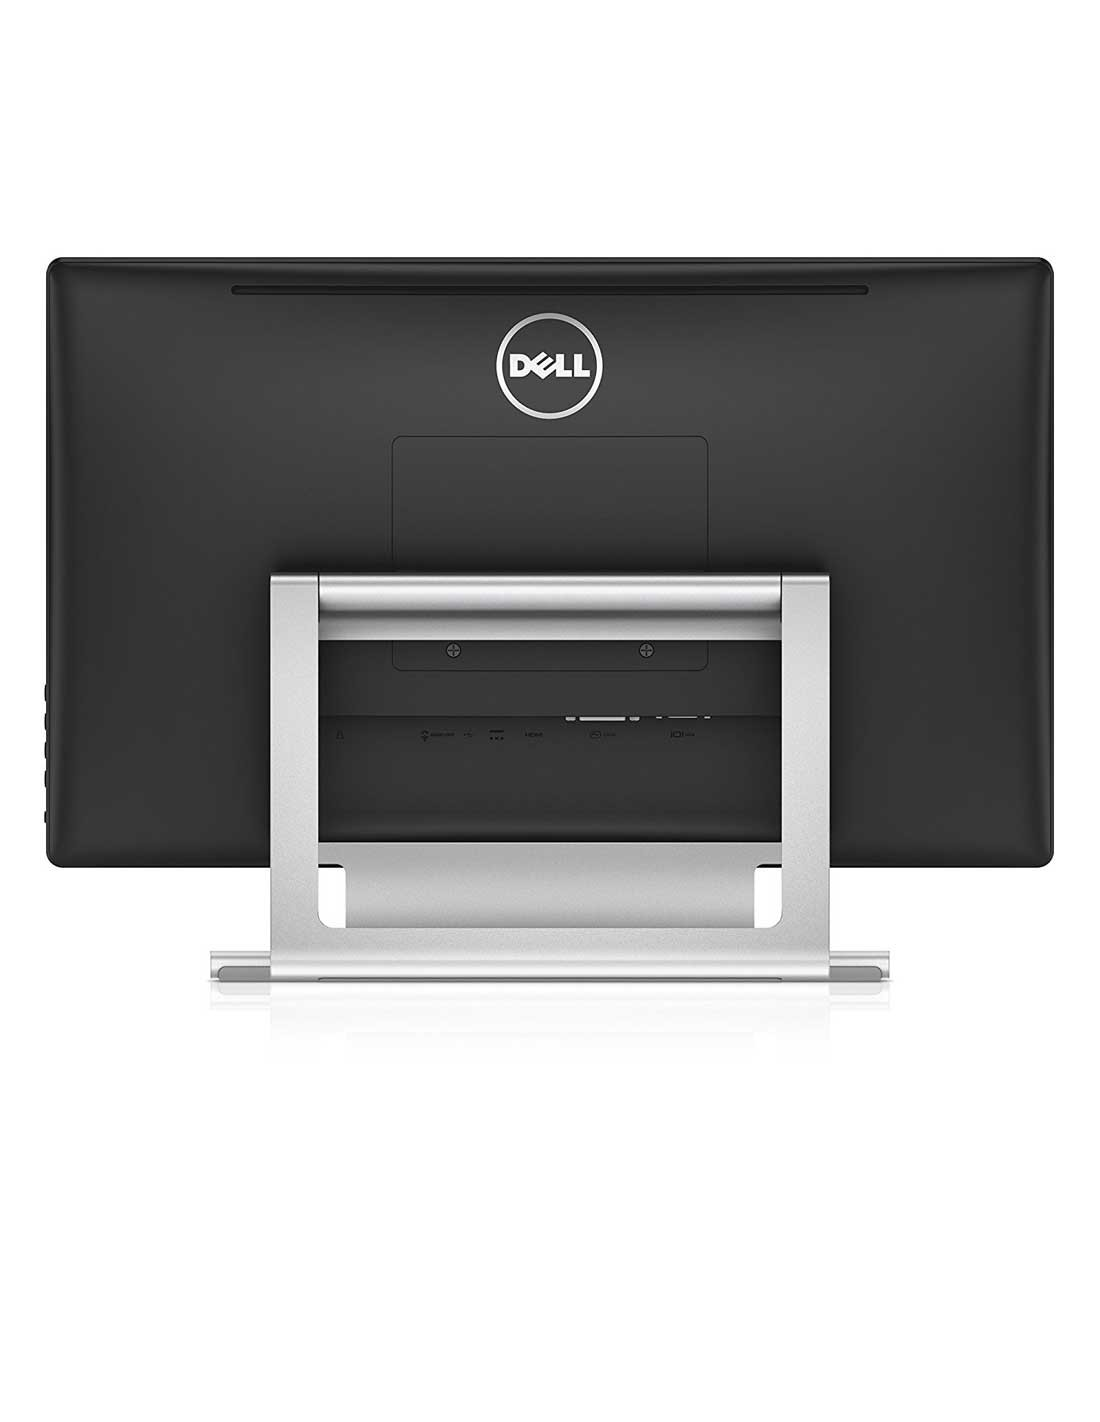 Dell 22 Touch Monitor S2240T images and photos in Dubai UAE